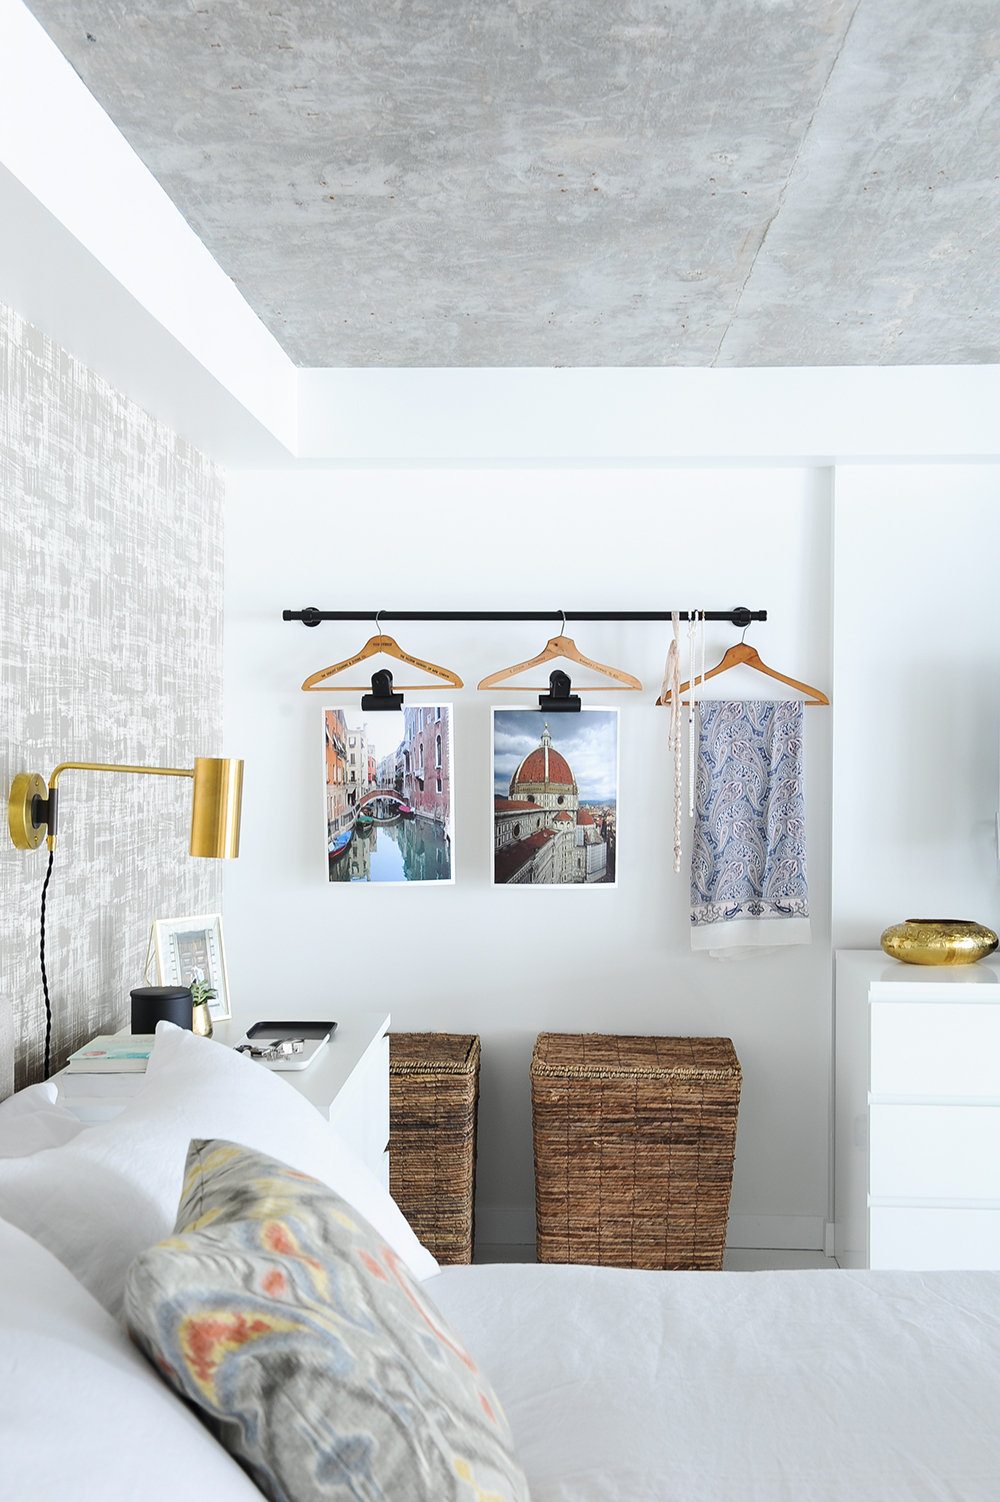 Wooden laundry baskets and decor, such as two paintings, a scarf and jewelry hanging on a black iron curtain rod in a bedroom,